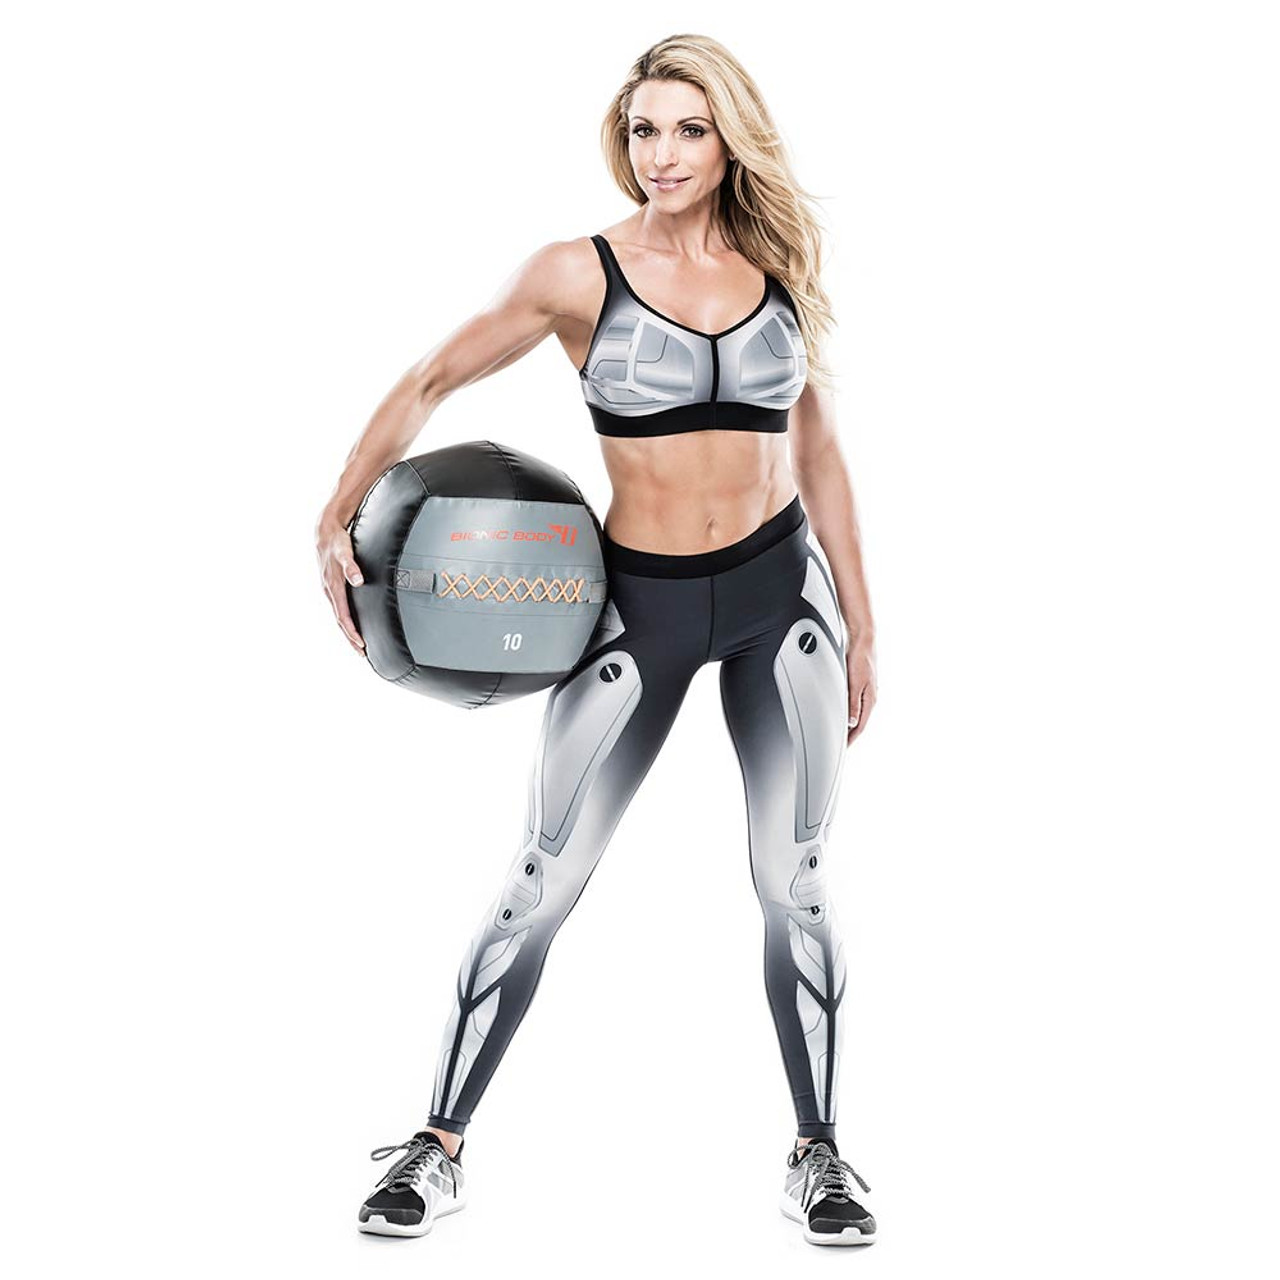 Fitness & Jogging Bionic Body Workout Kit €